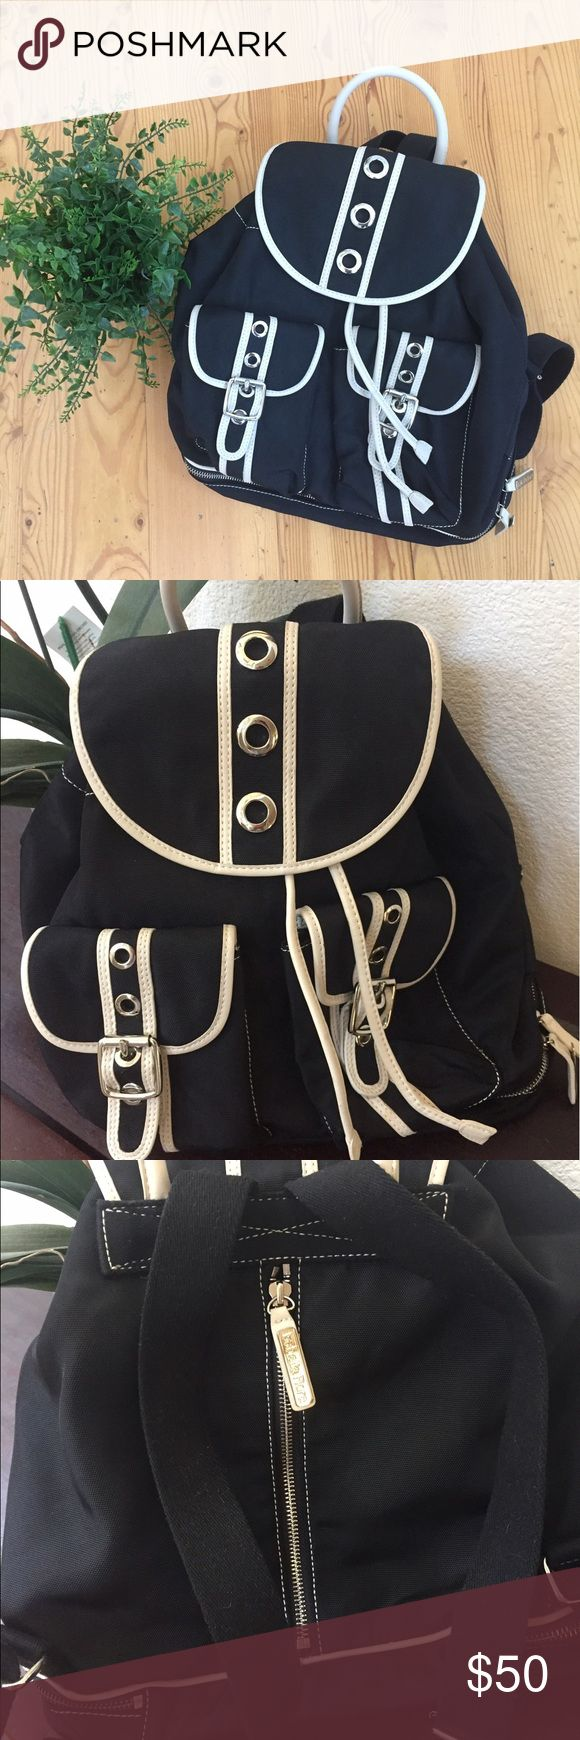 Isabella Fiore Black And White Backpack Pre owned, black and white leather adjustable drawstrings, black straps, clean inside , one defect on bottom side ( see pic), great quality bag! Isabella Fiore Bags Backpacks